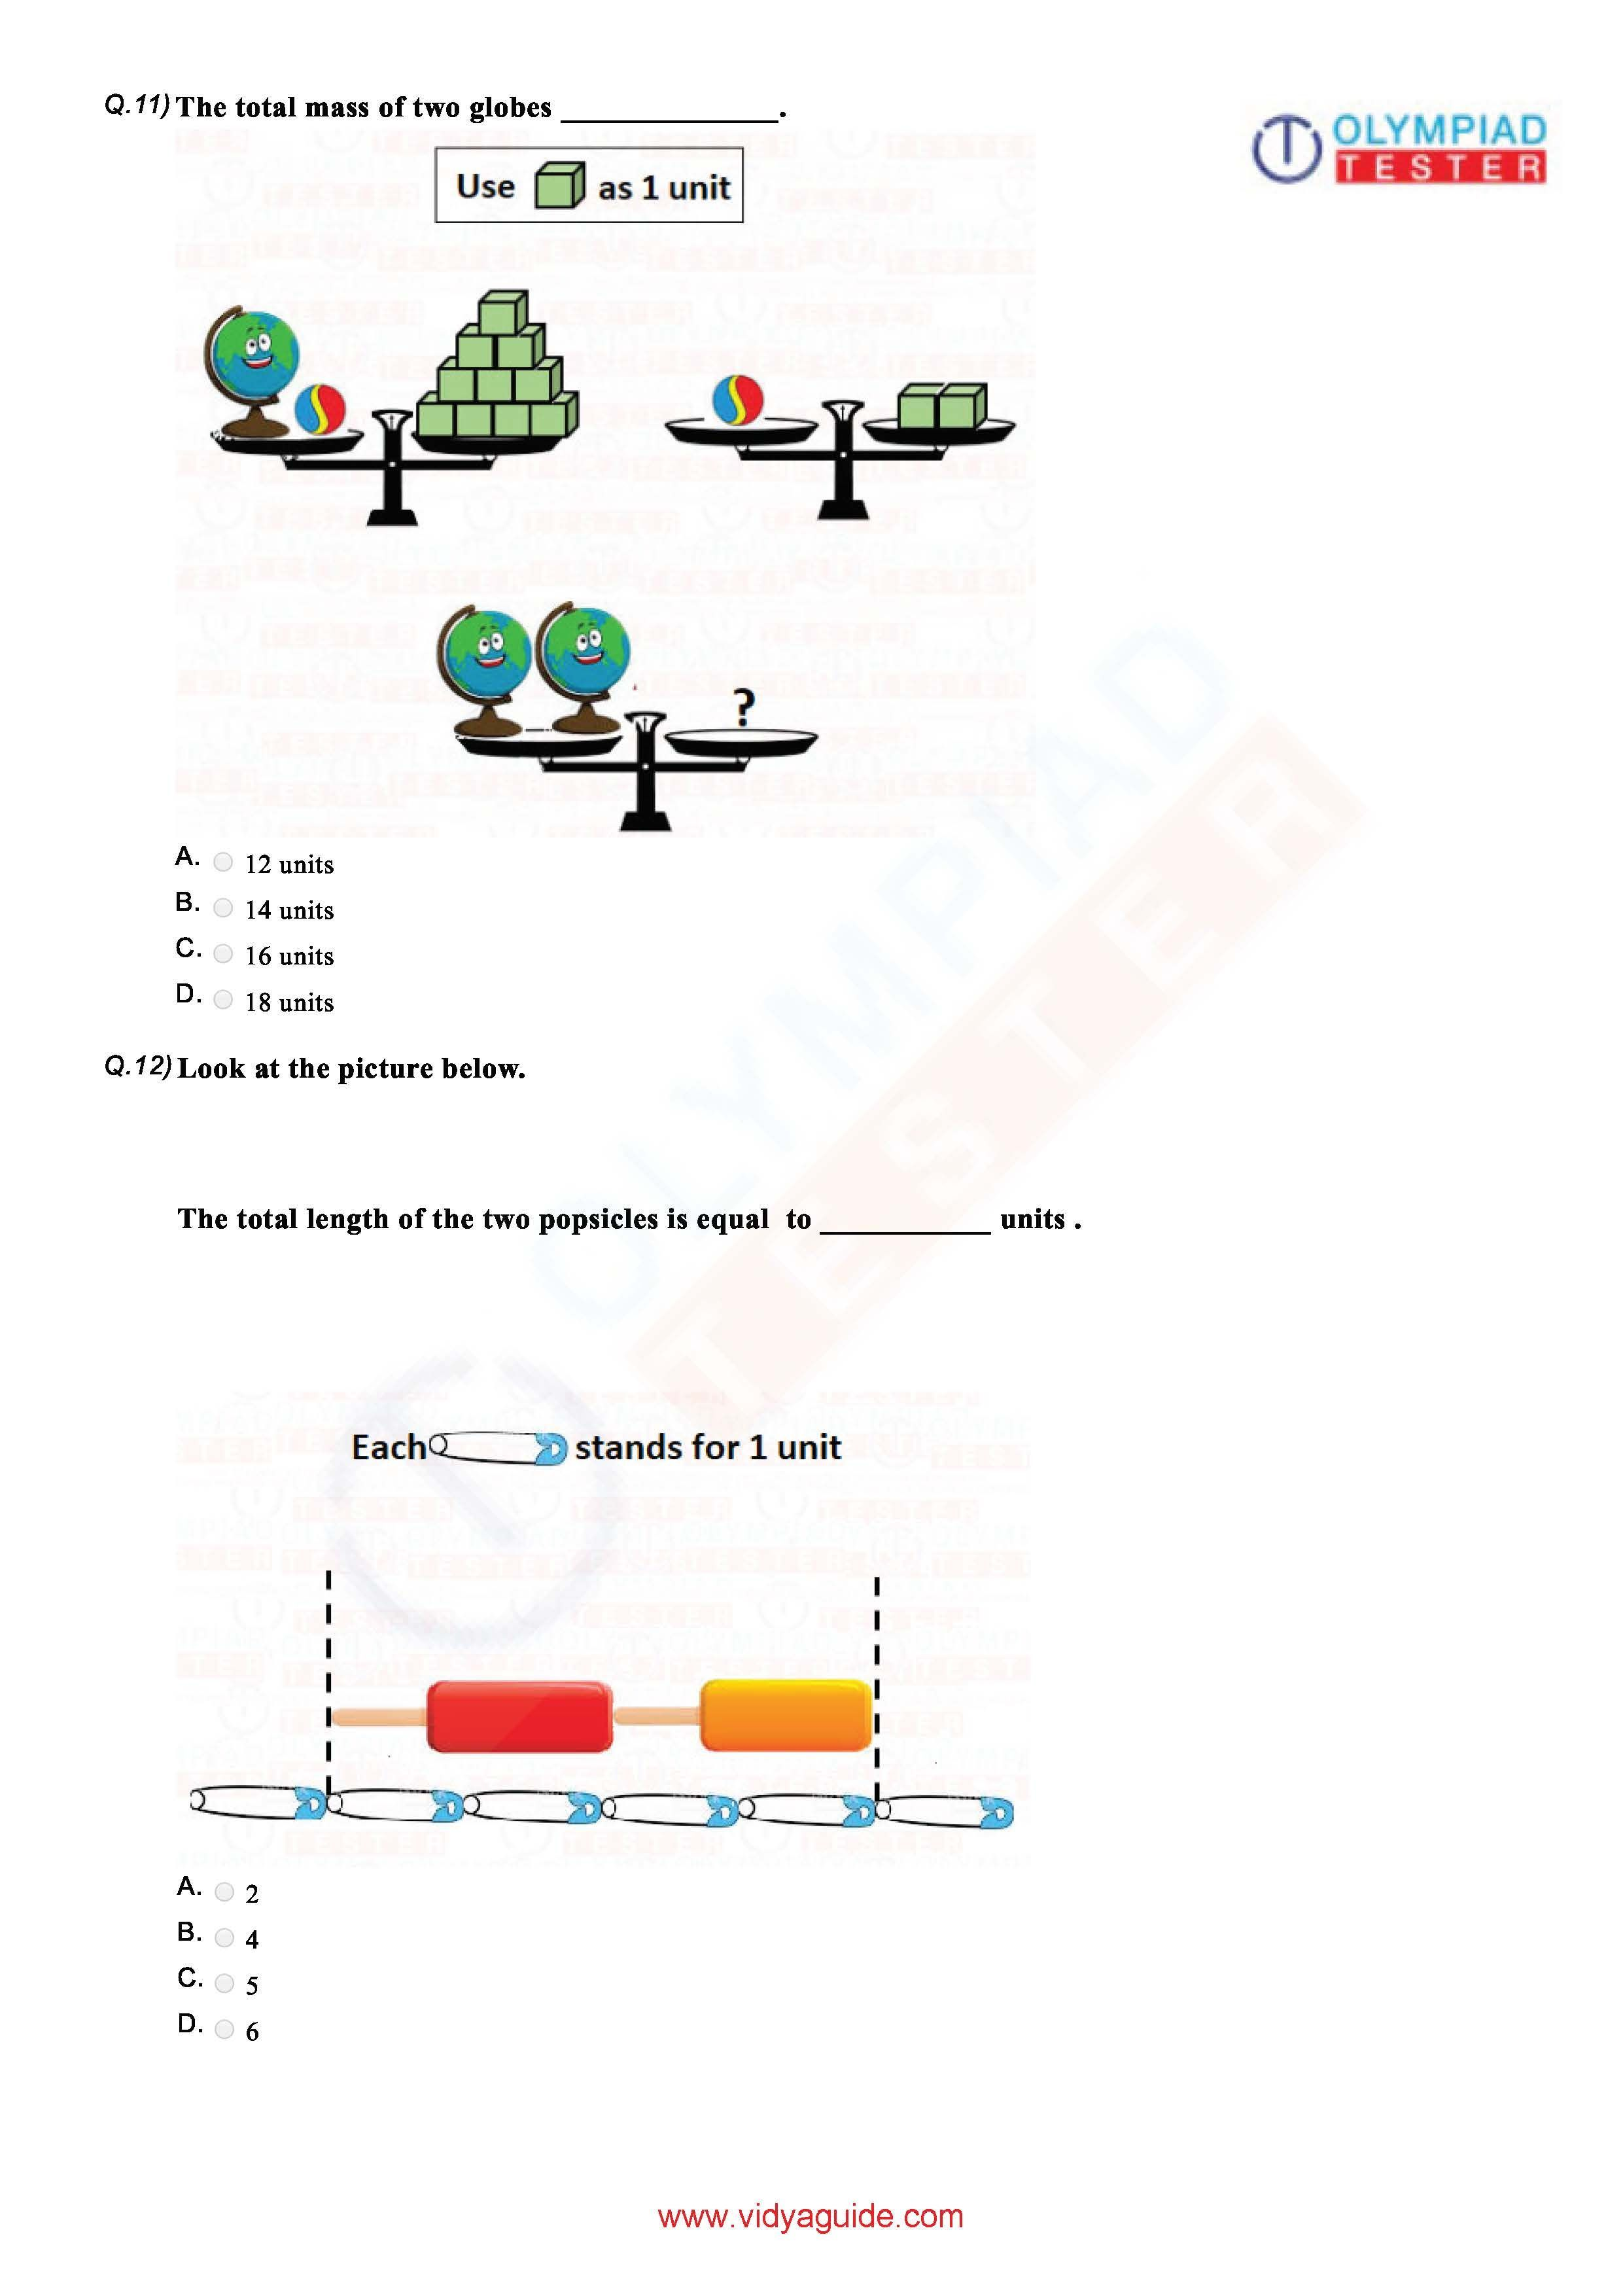 Download Grade 1 Maths Olympiad Printable Worksheets And